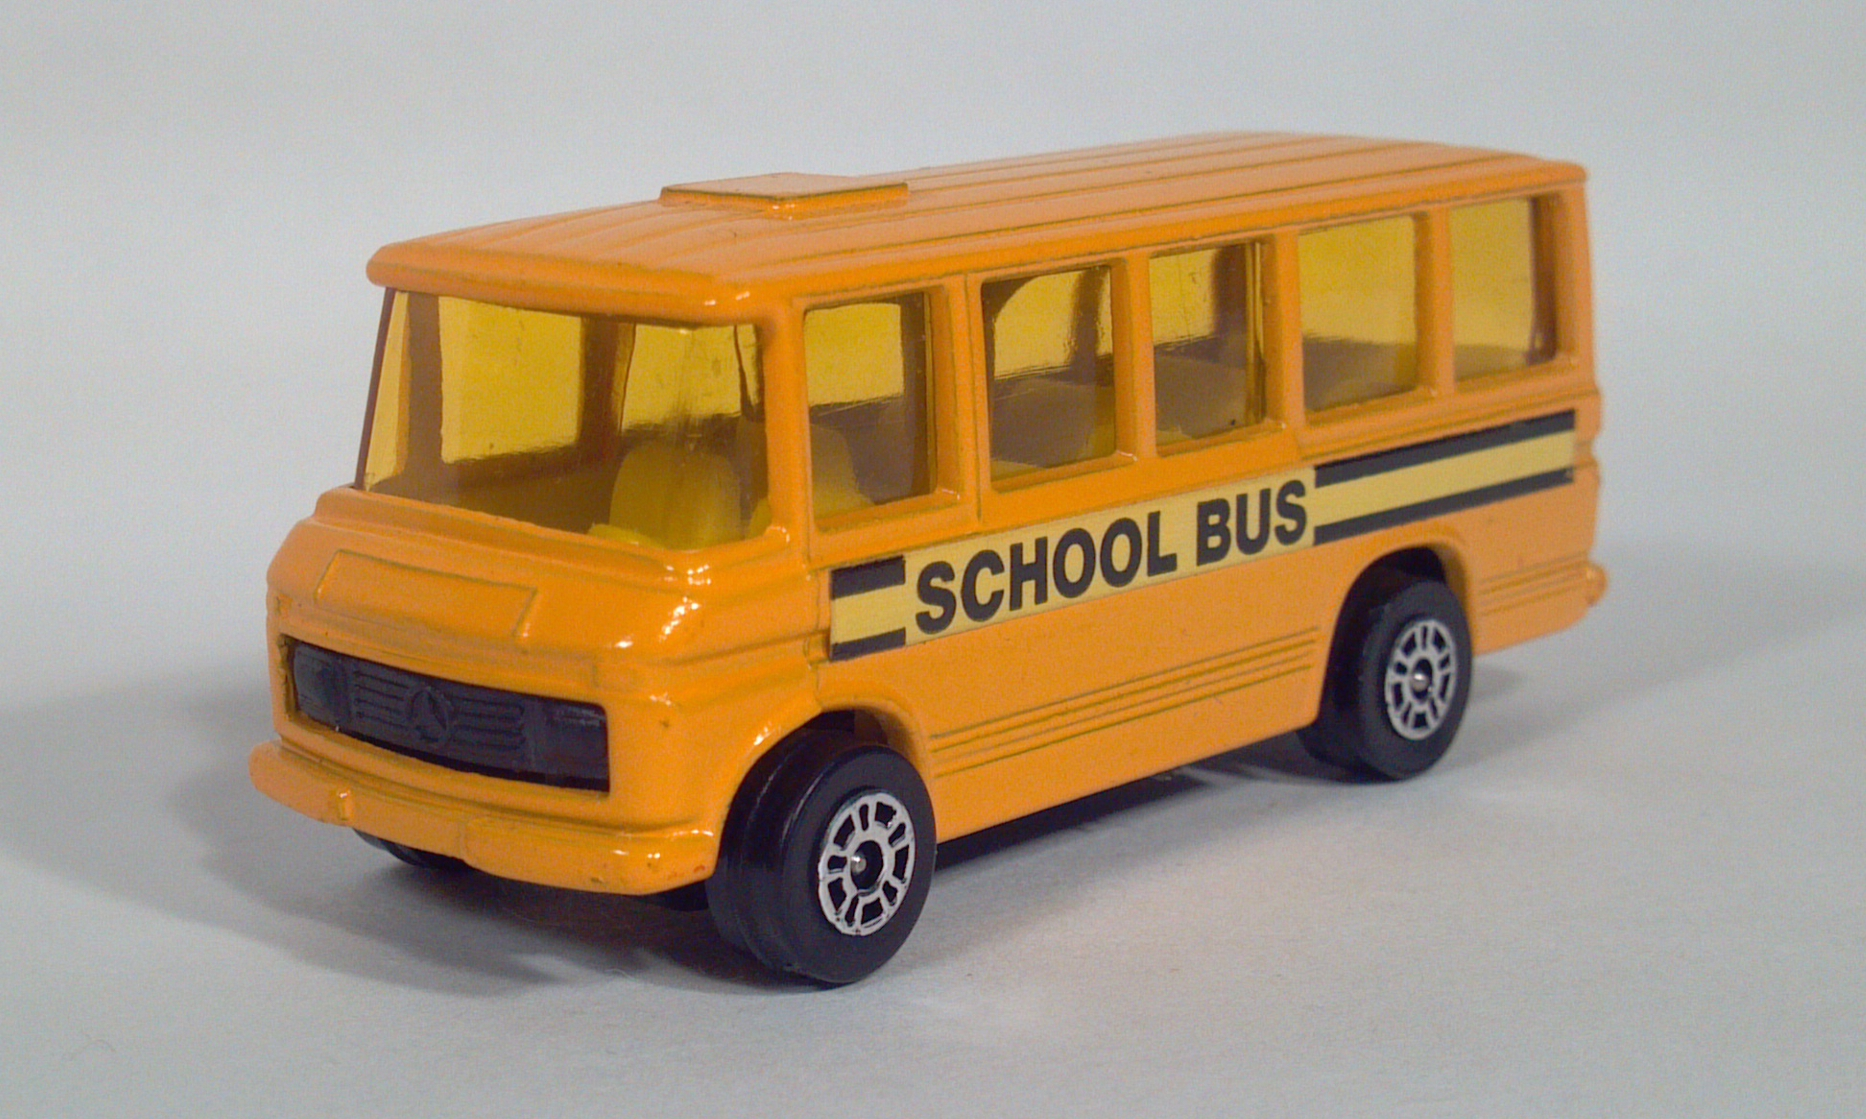 My Corgi Diecast Scale Model Toy Bus Collection